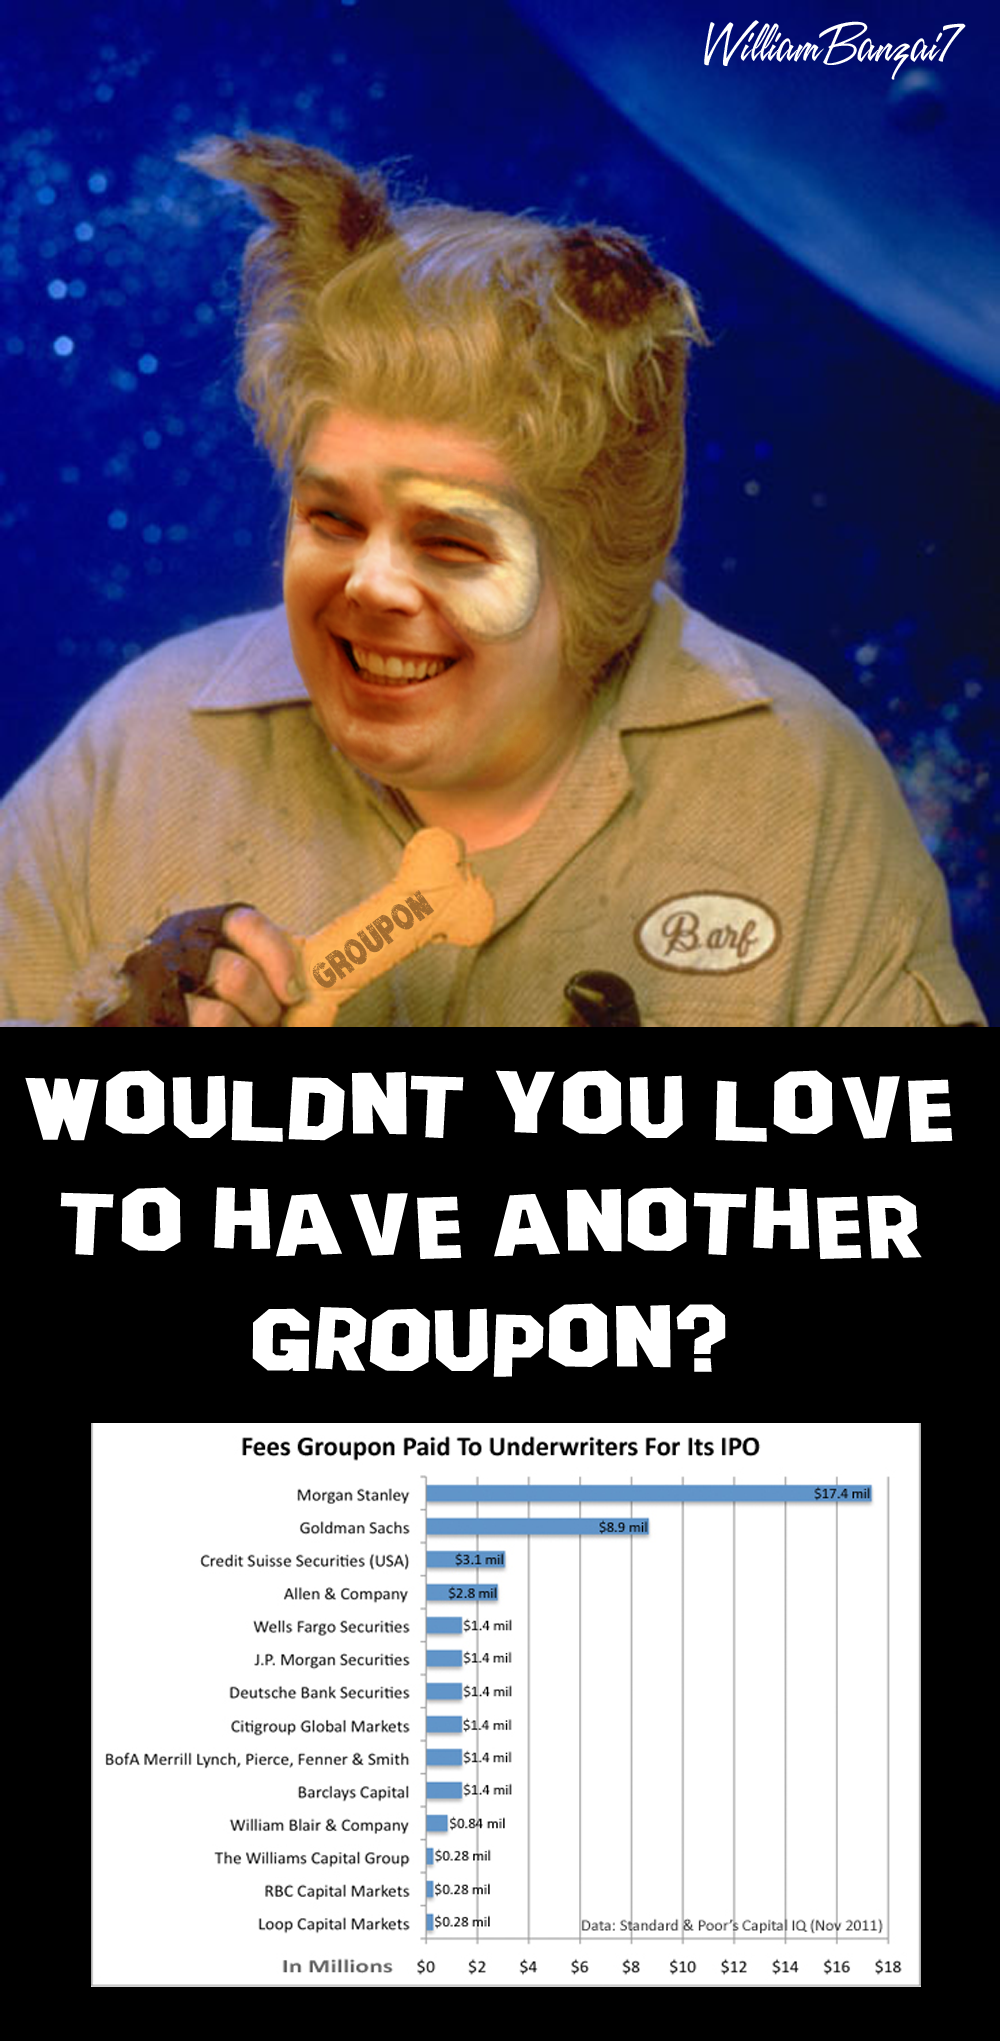 WOULDN'T YOU LOVE TO HAVE ANOTHER GROUPON?